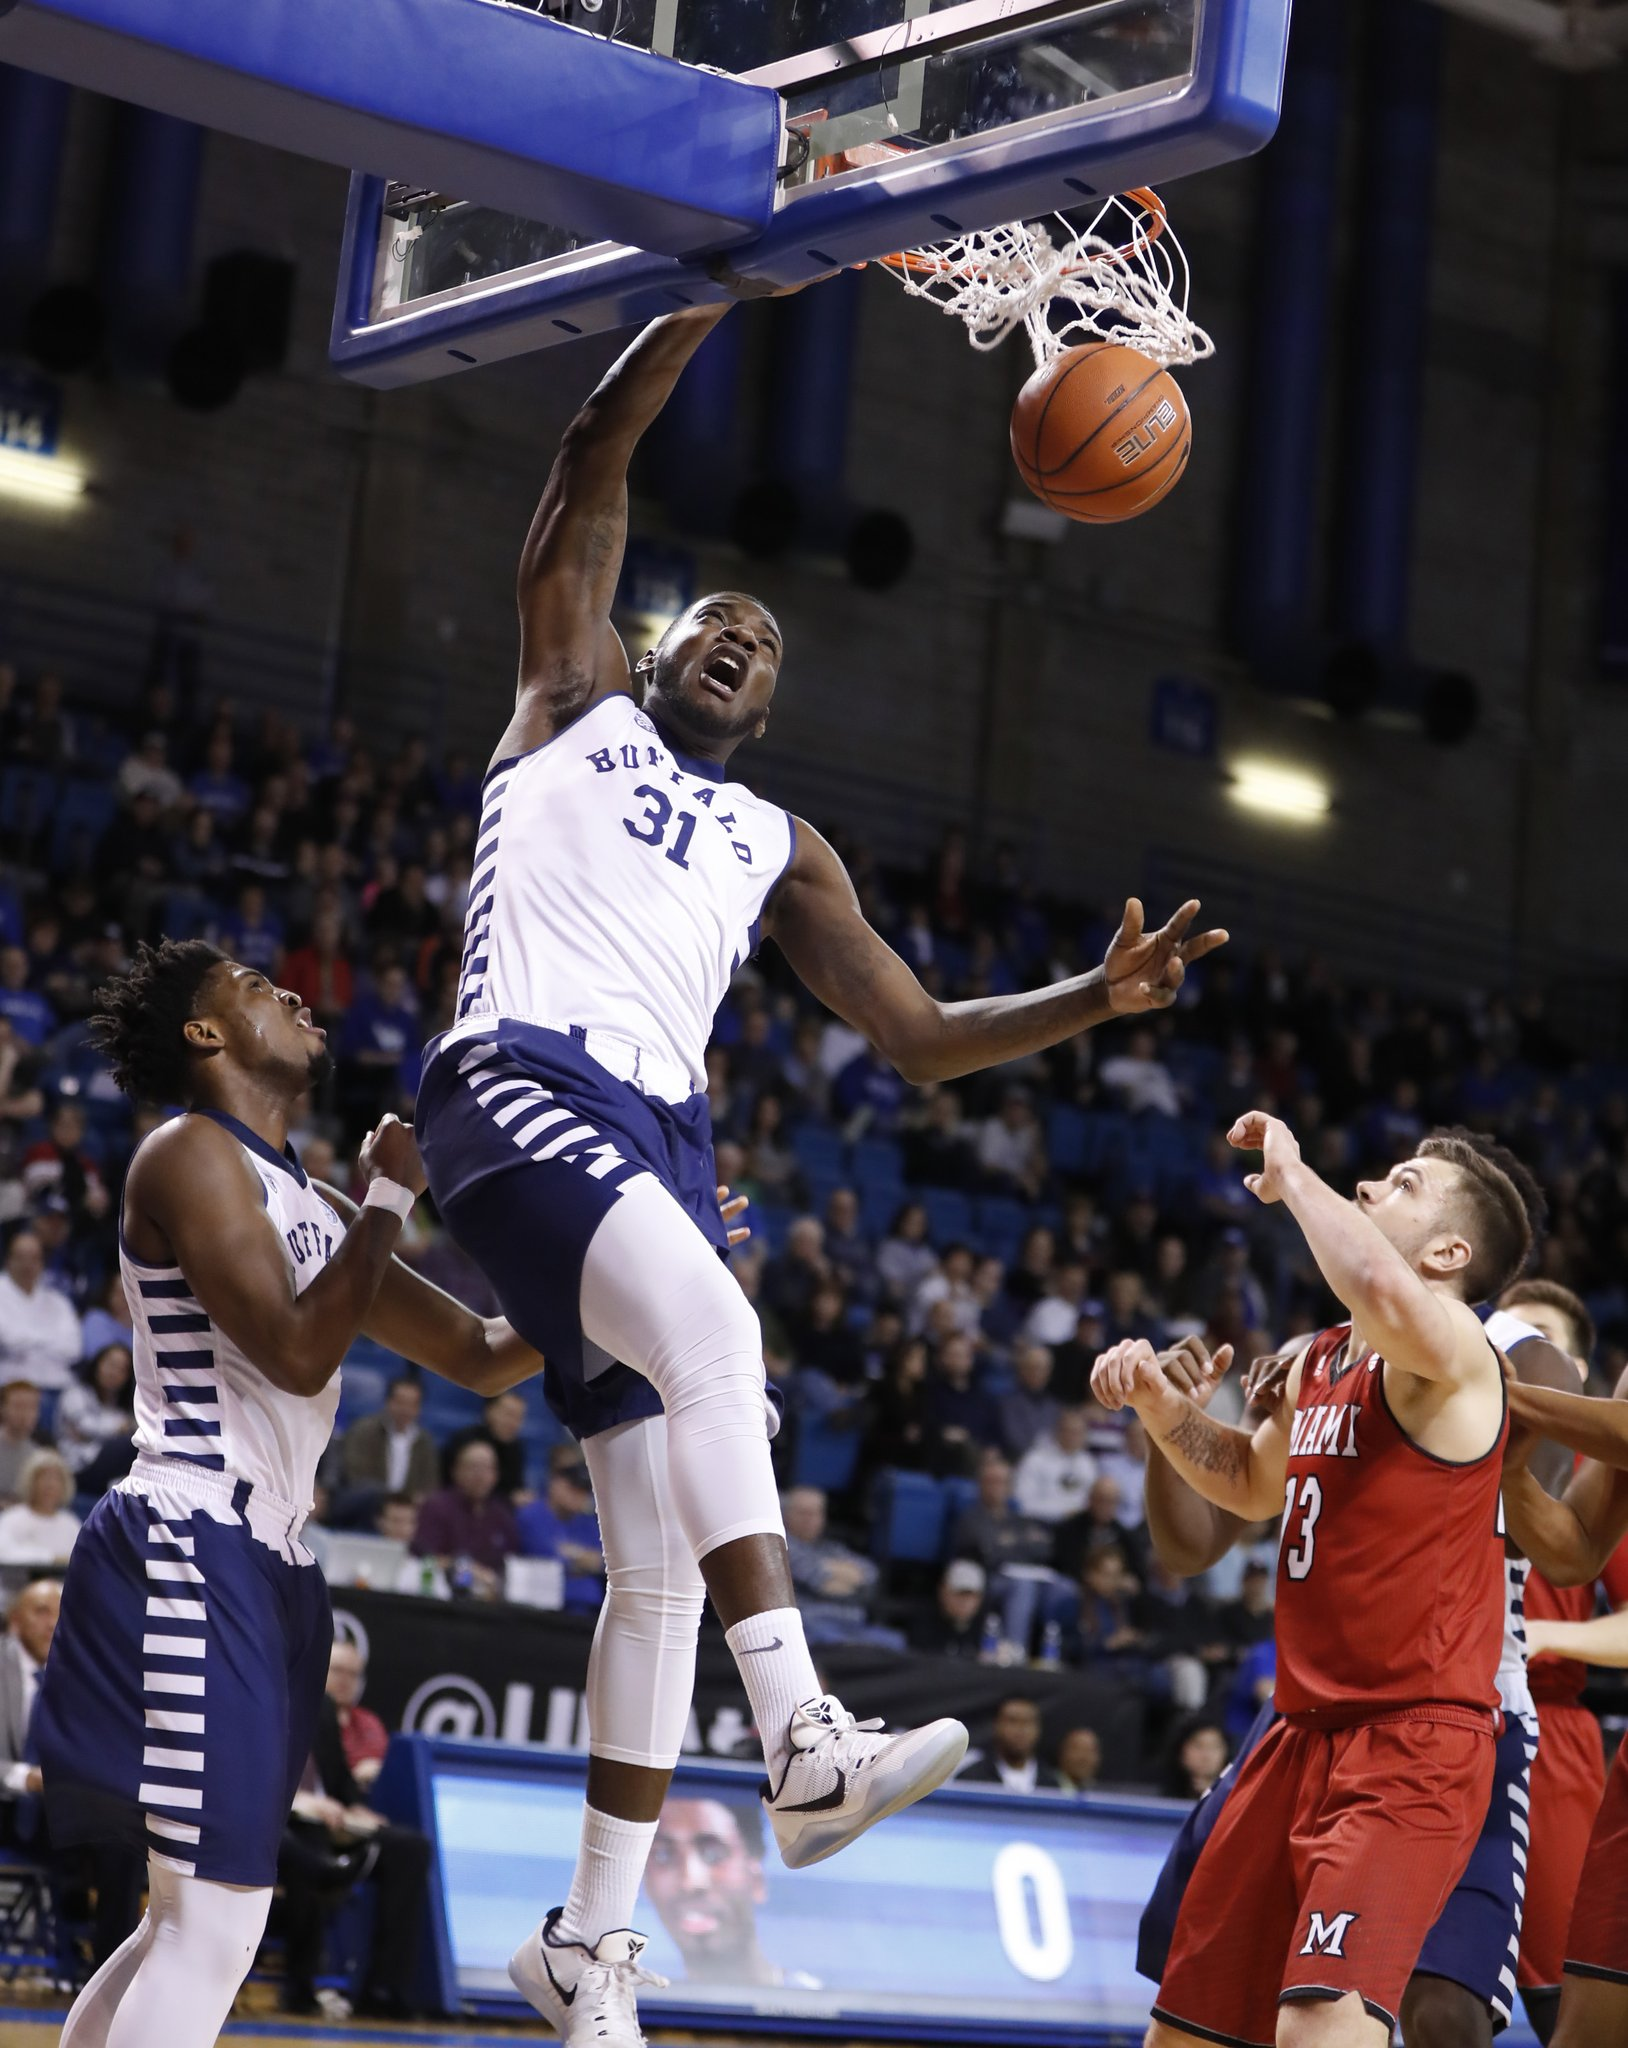 Raheem Johnson dunks vs. Miami Ohio. (Harry Scull Jr./Buffalo News)